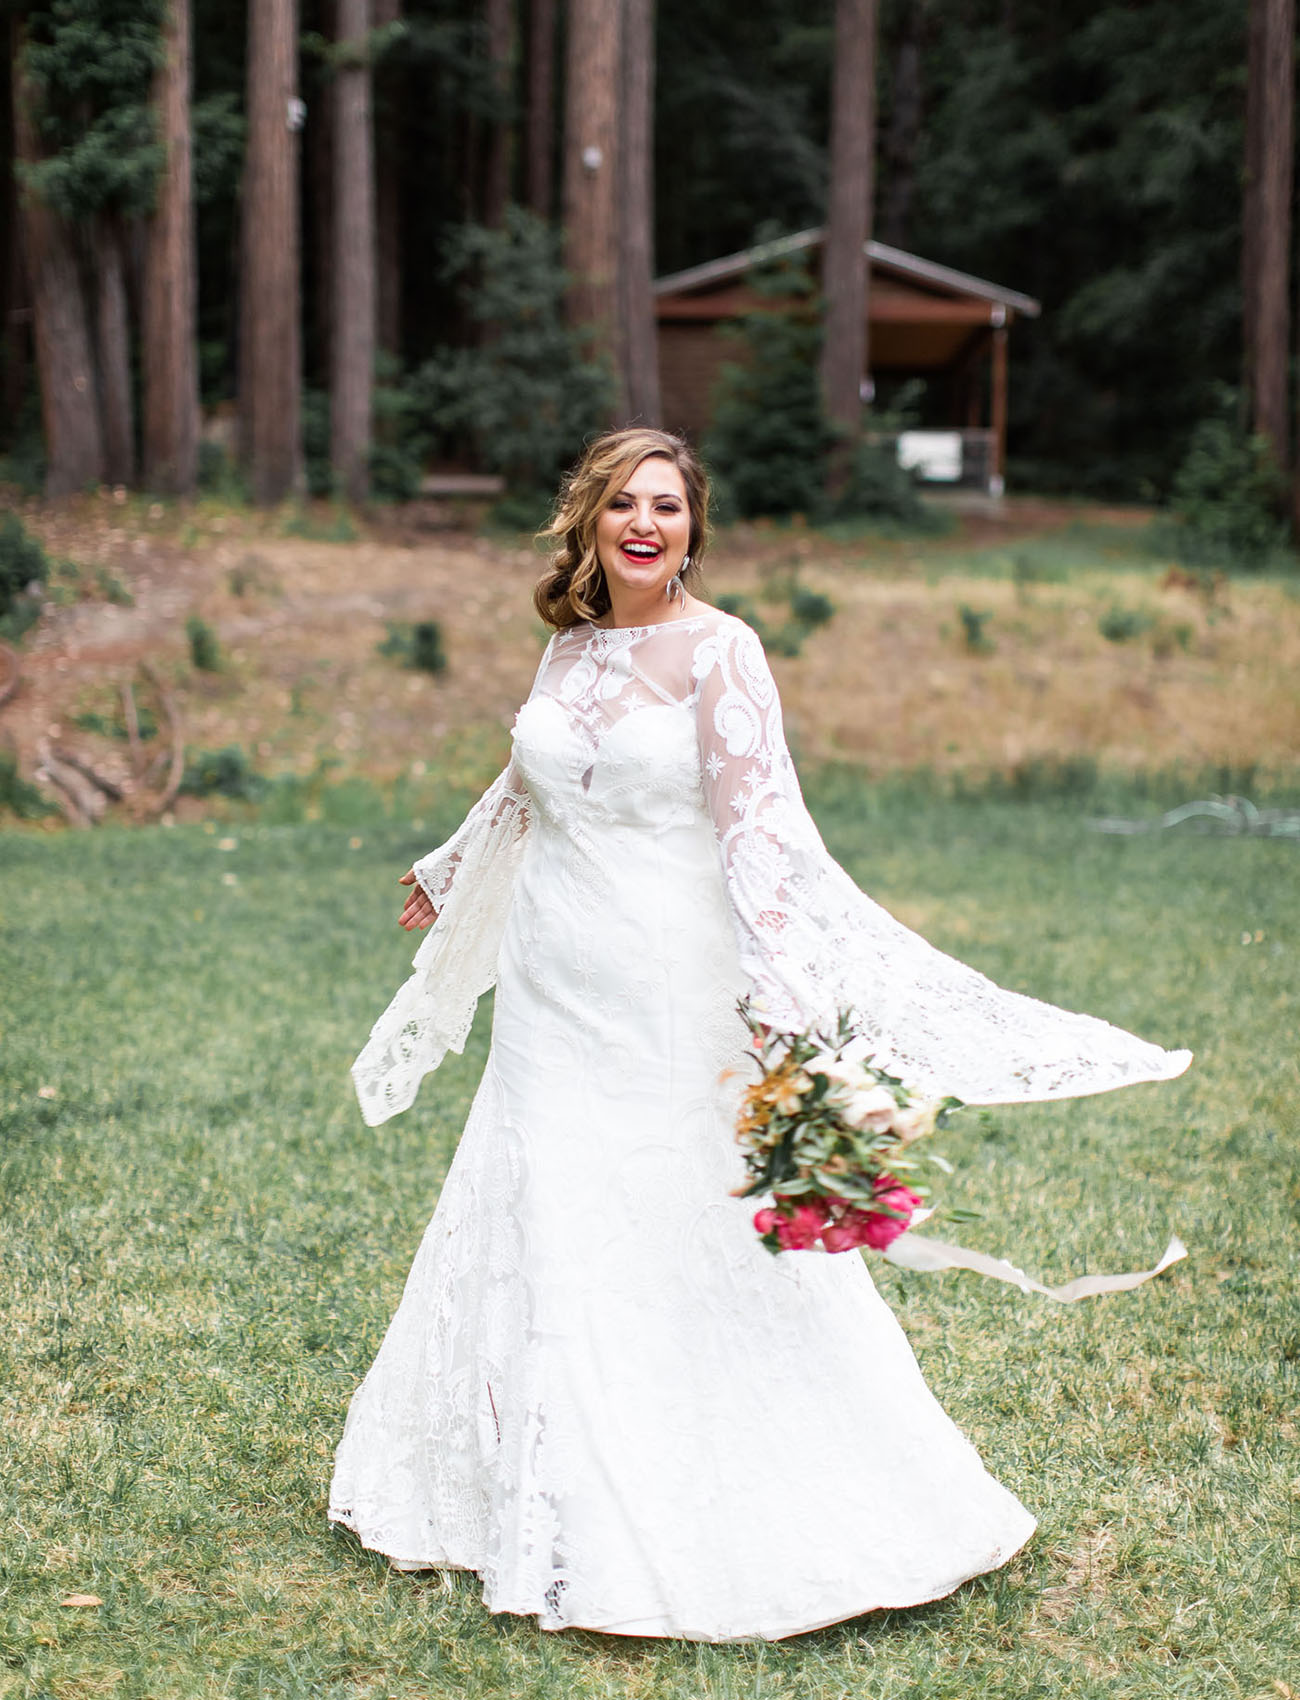 The bride was wearing an A line wedding dress with bell sleeves and a cutout back